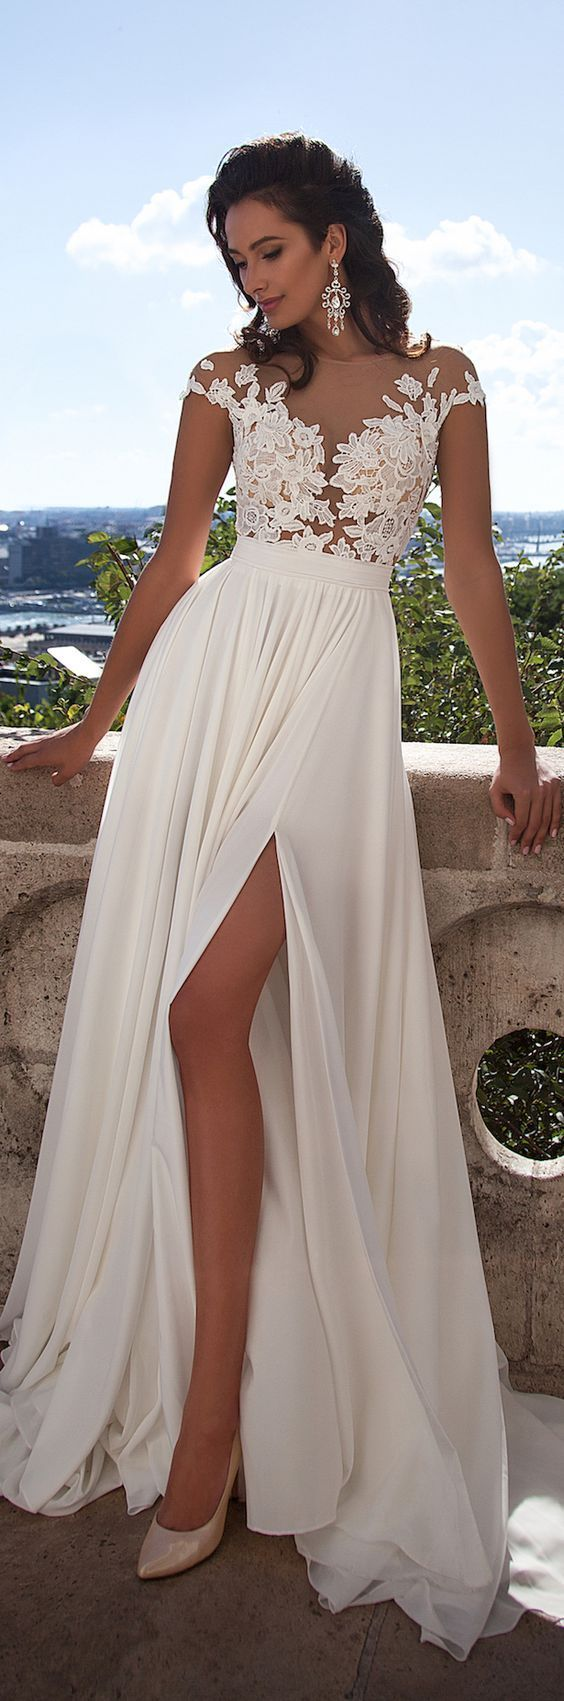 Milla Nova 2016 Summer Beach Chiffon Wedding Dresses ~ Lace Top Side Slit  Elegant Bridal Gowns ~ So Beautiful!!!